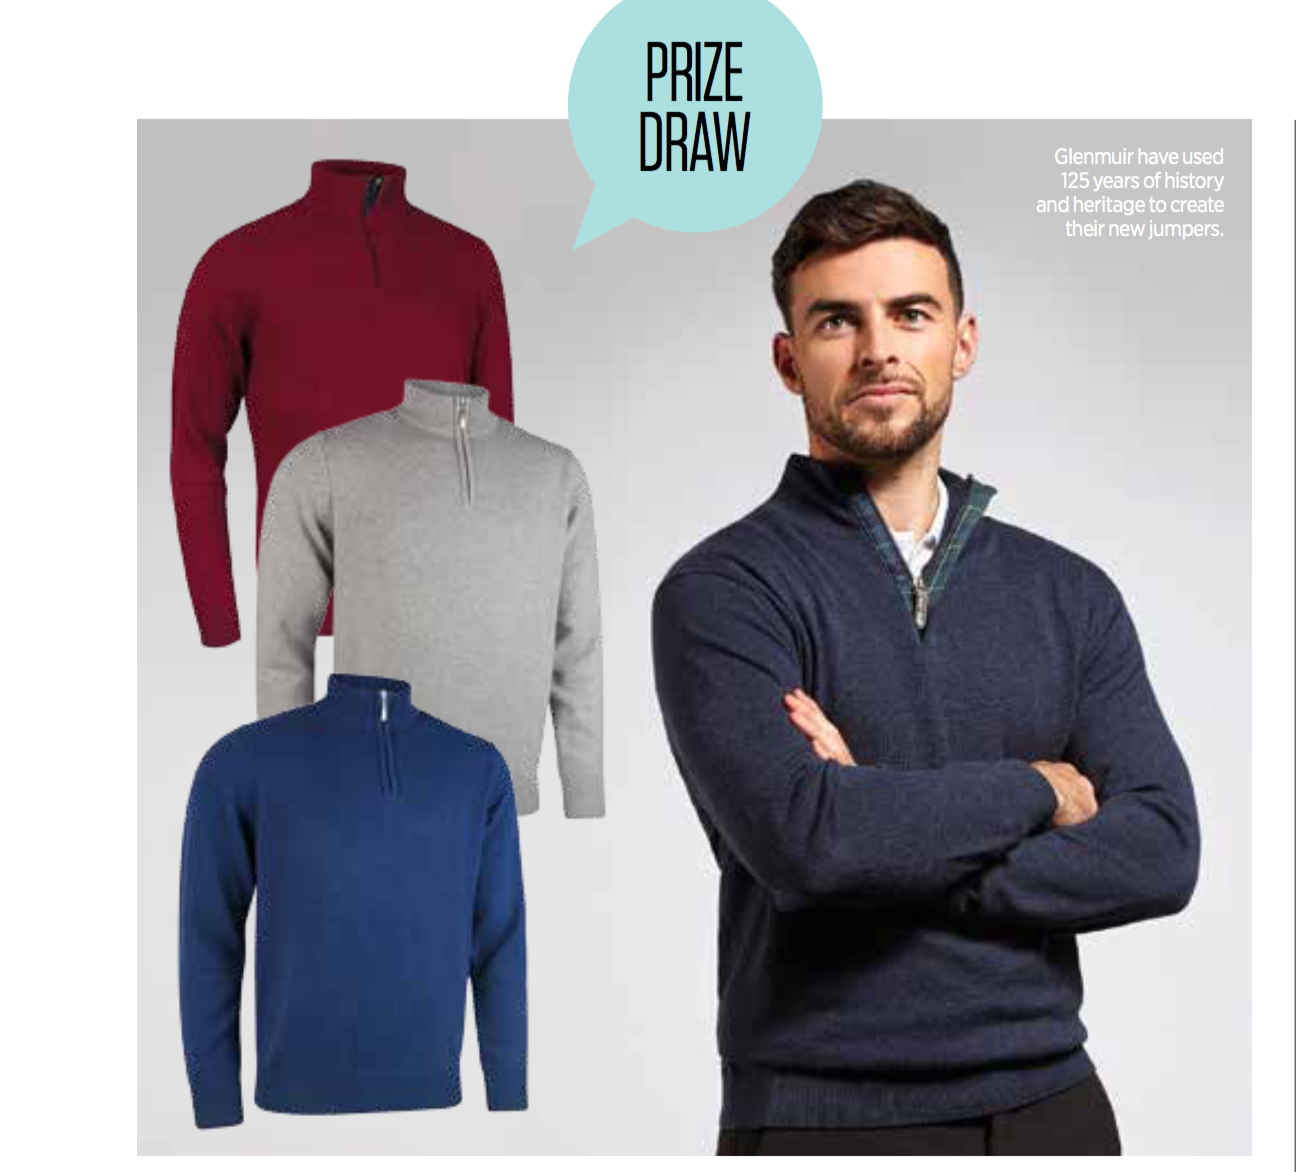 WIN A CASHMERE GLENMUIR JUMPER sweepstakes